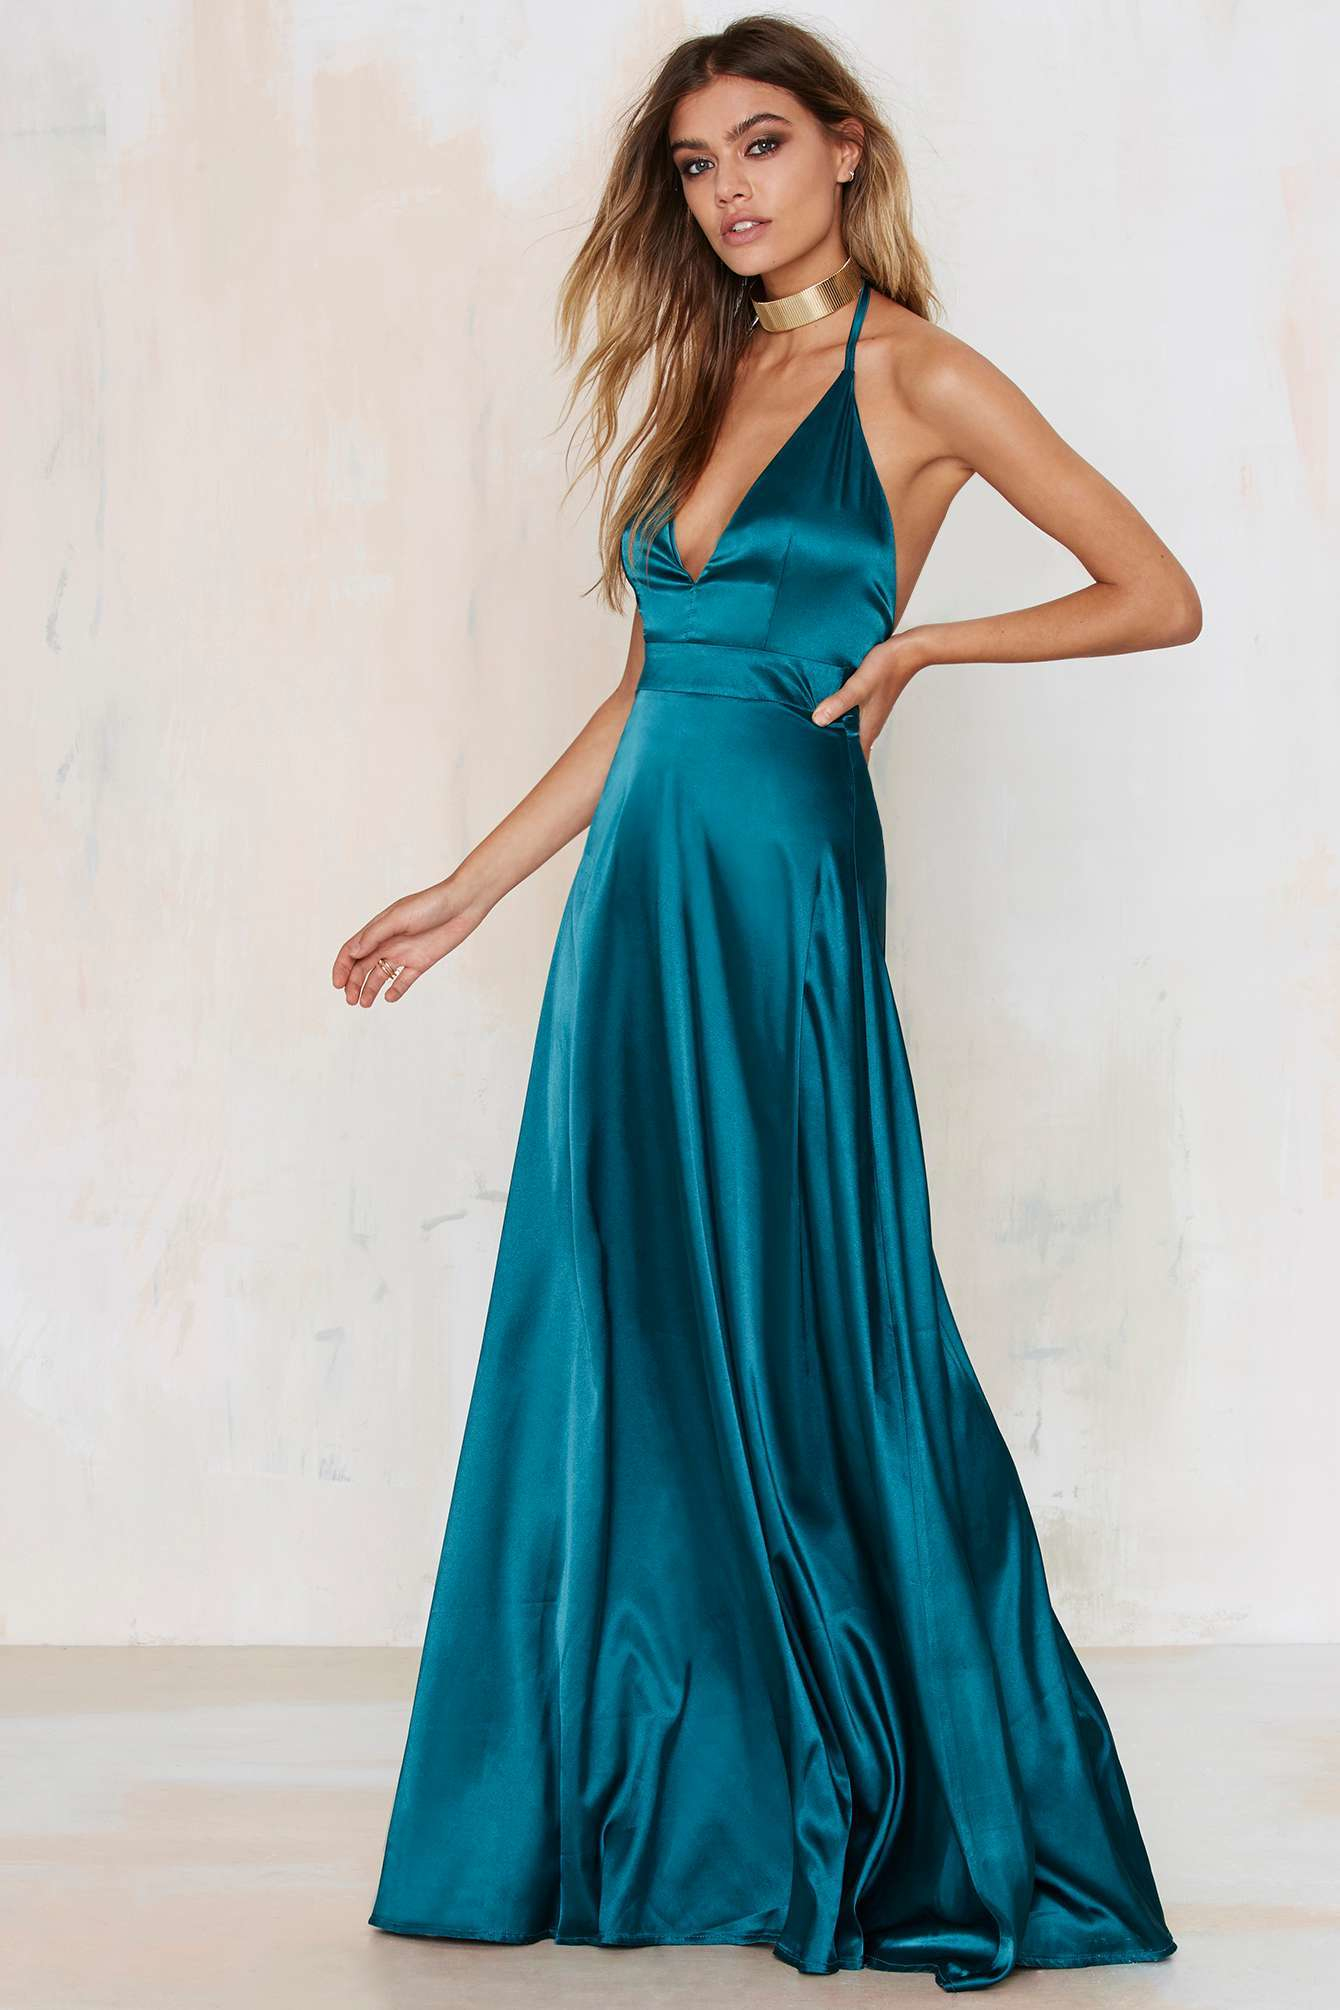 Womens Sleeveless Summer Maxi Dress Silk Satin Evening Cocktail Dresses Gowns. Brand New · ETAOLINE. $ Buy It Now. Free Shipping. Free Returns. 5% off. AT BOUTIQUE RED-BURGUNDY/TAUPE V-NECK Satin Maxi Dress with THIGH SLITS USA. Brand New. $ Buy It Now. Free Shipping. 13+ Watching.